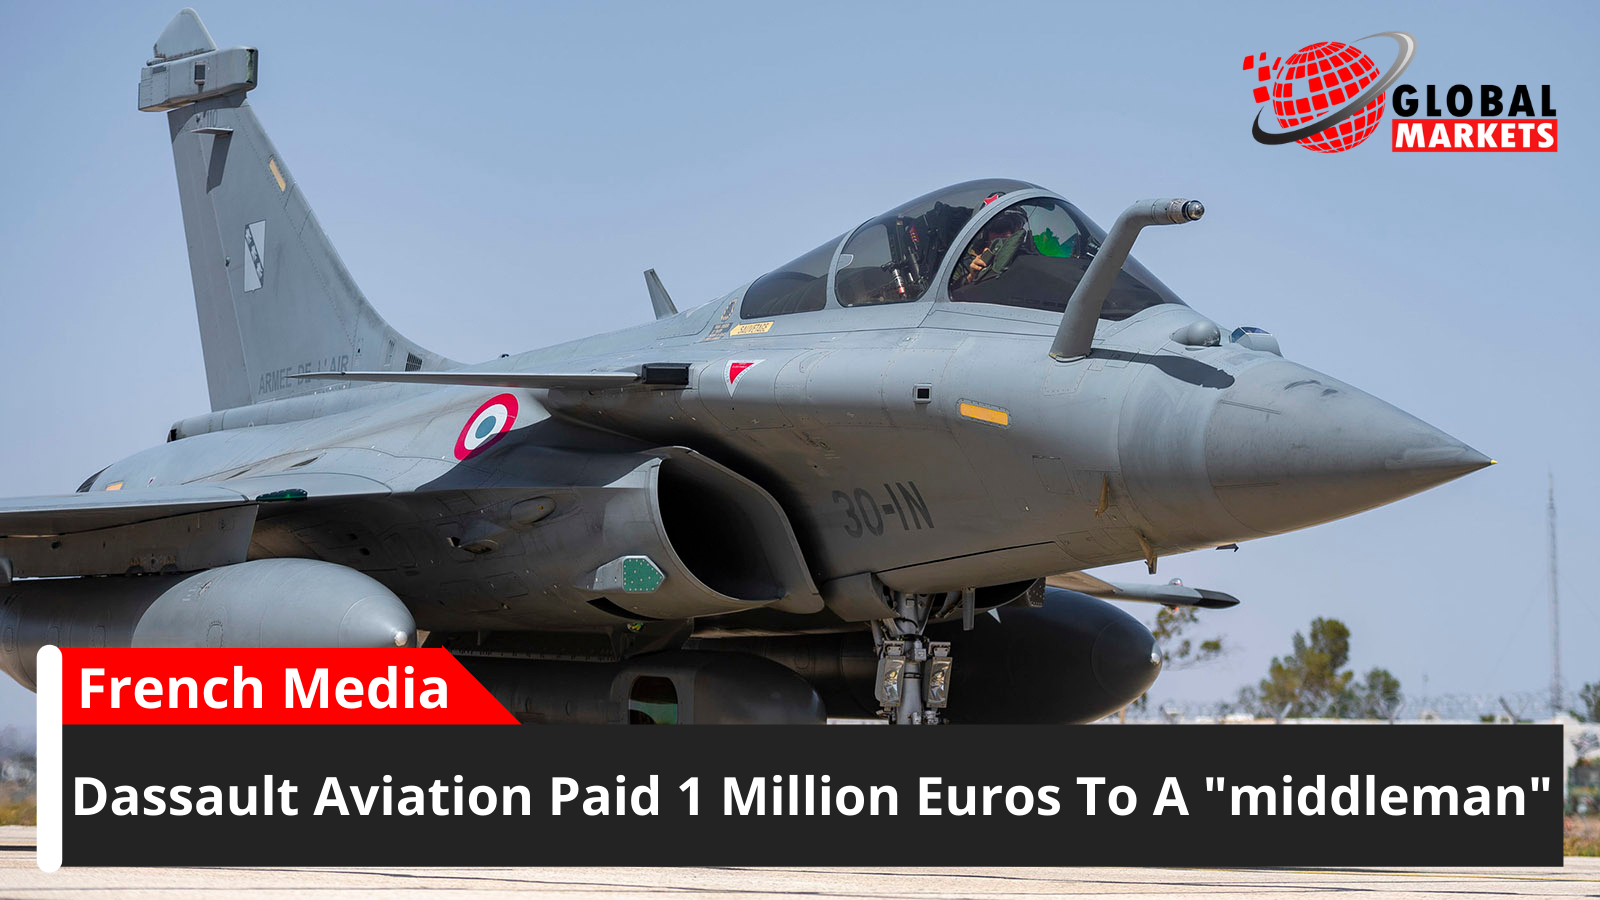 """Dassault Aviation, the maker of rafale jets, paid 1 million euros to a person, described as a """"middleman"""""""